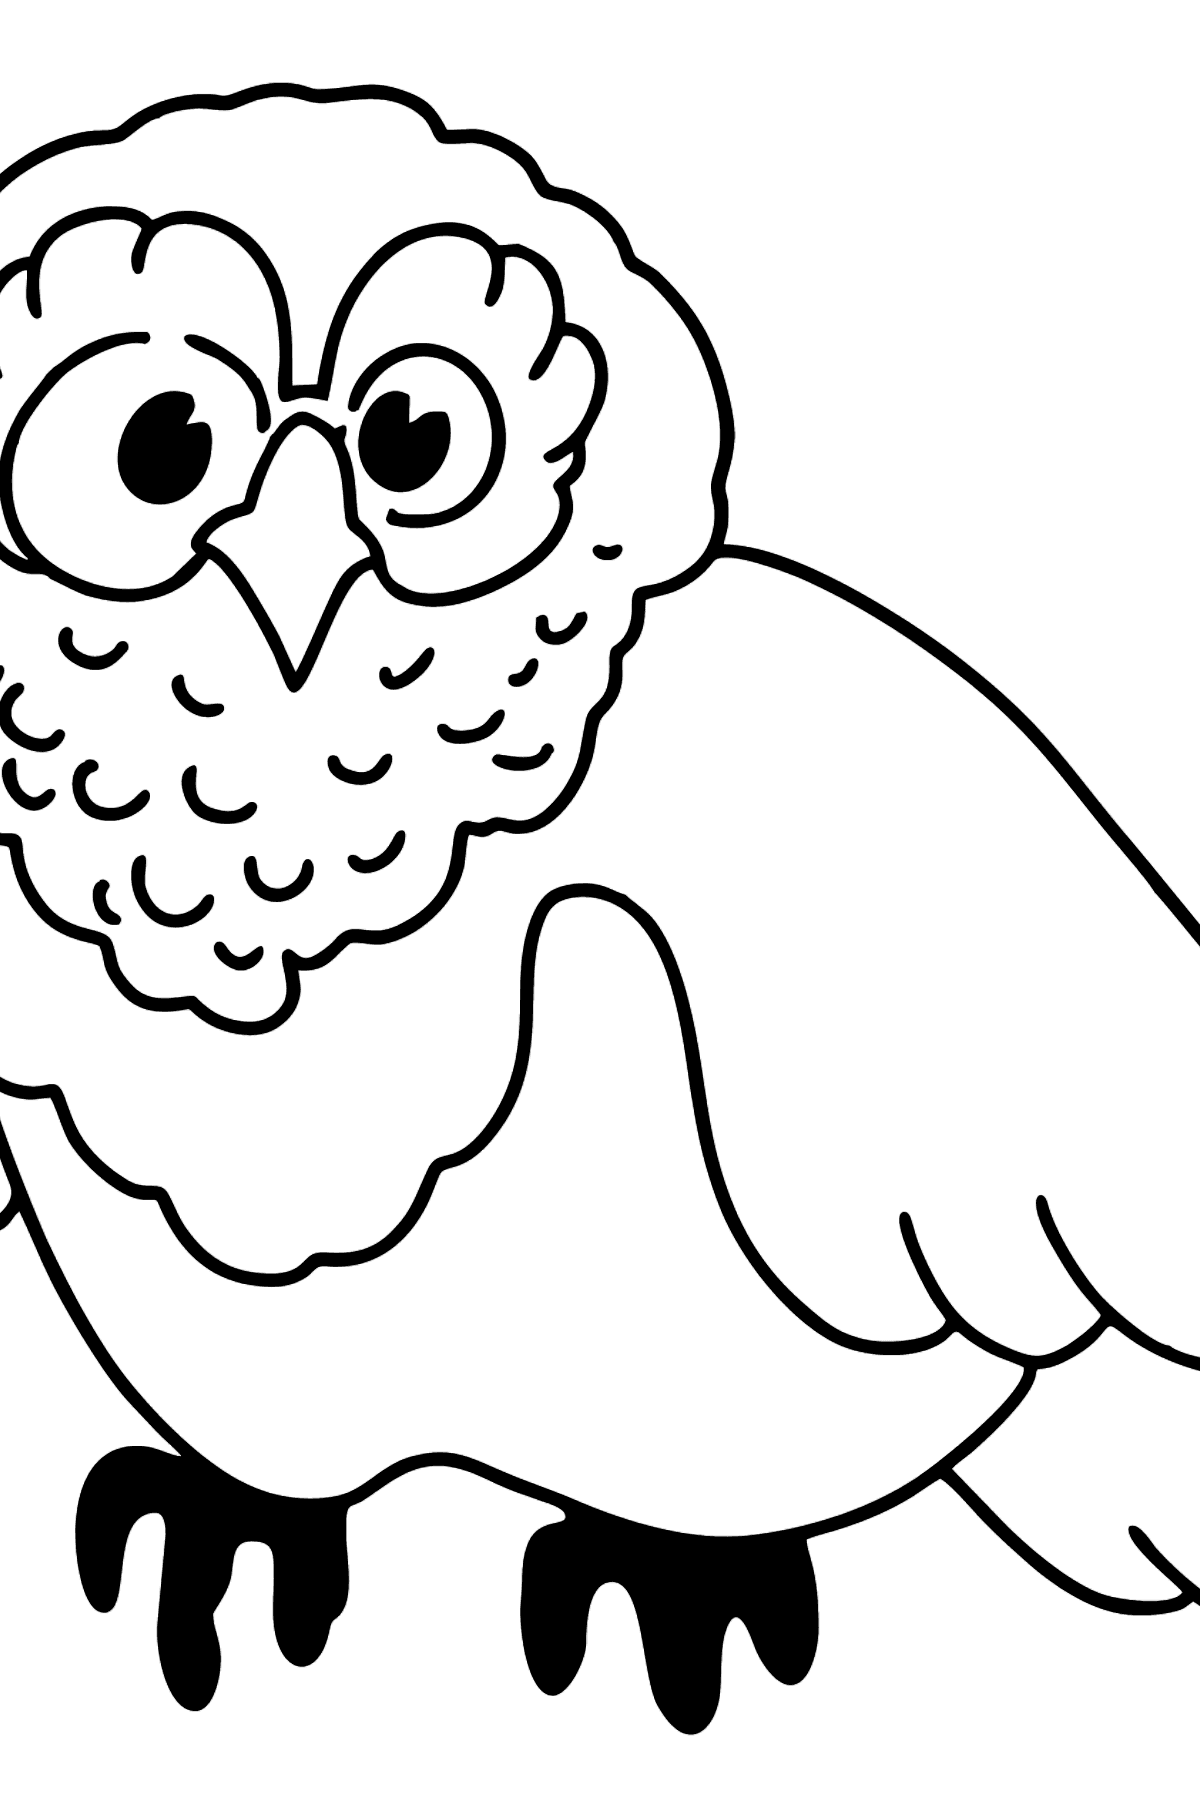 Simple coloring page with a Owl - Coloring Pages for Kids